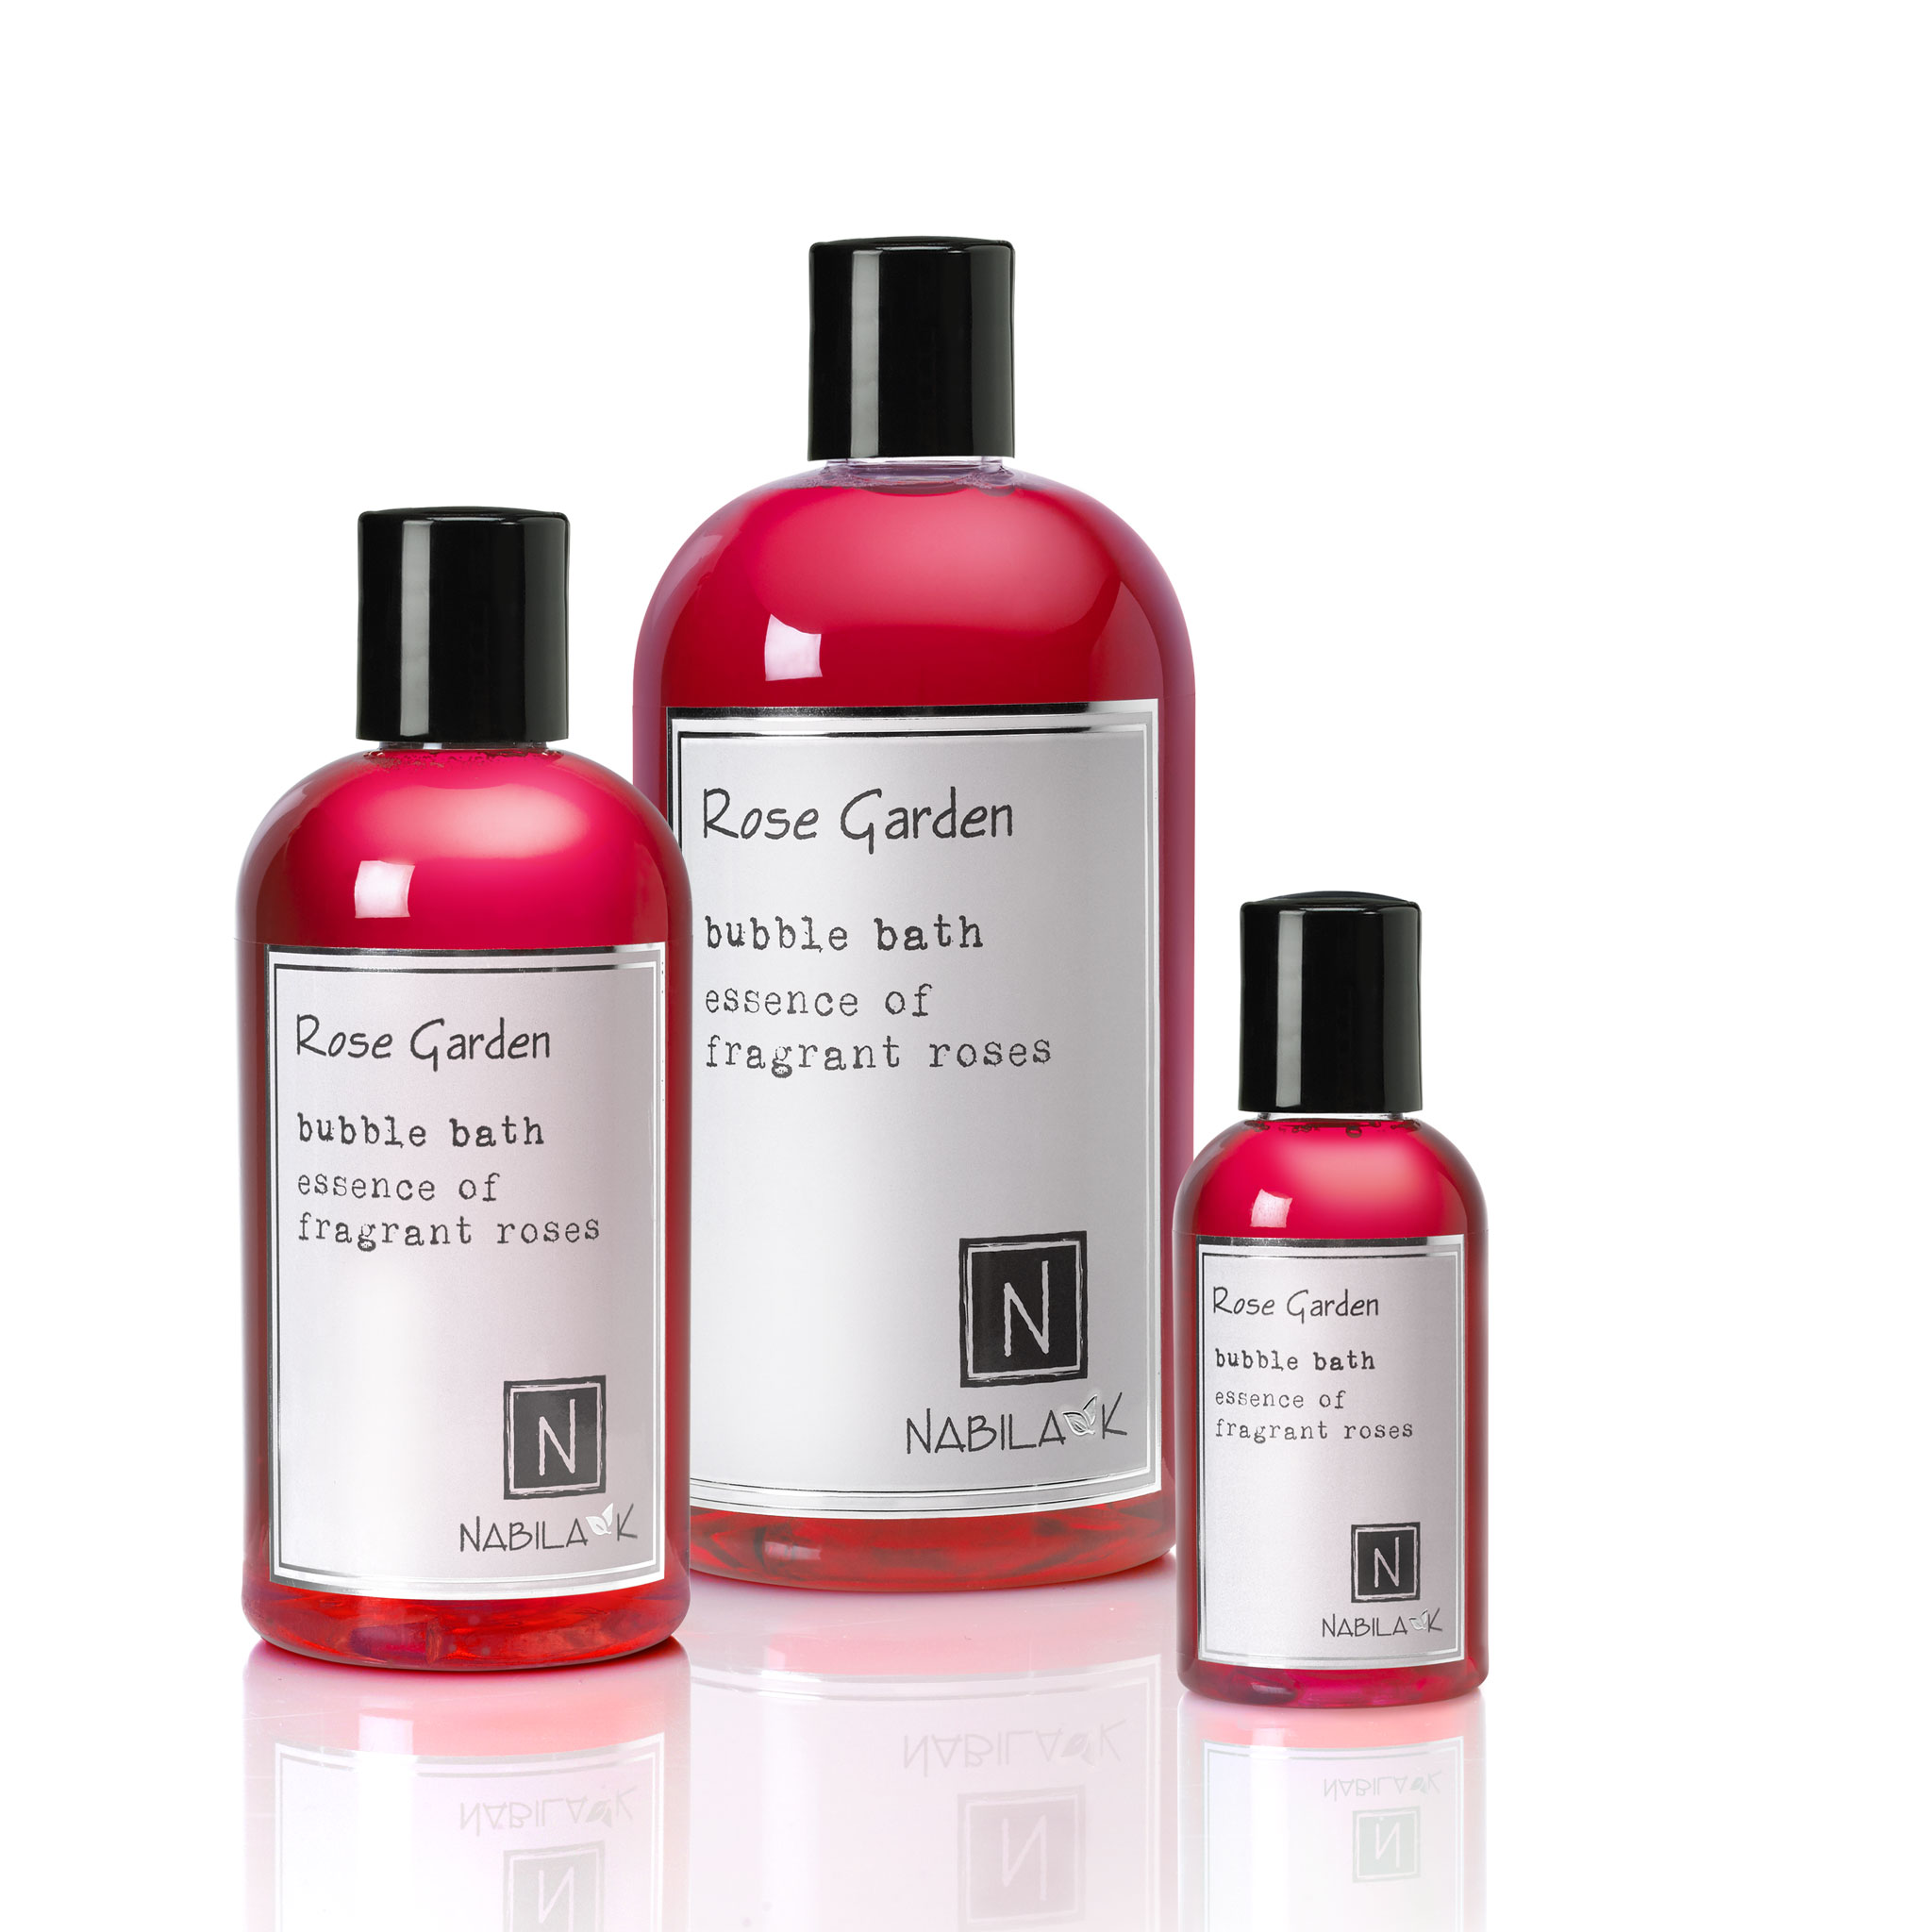 1 2oz and 1 8oz and 1 16oz bottle of rose garden bubble bath essence of fragrant roses